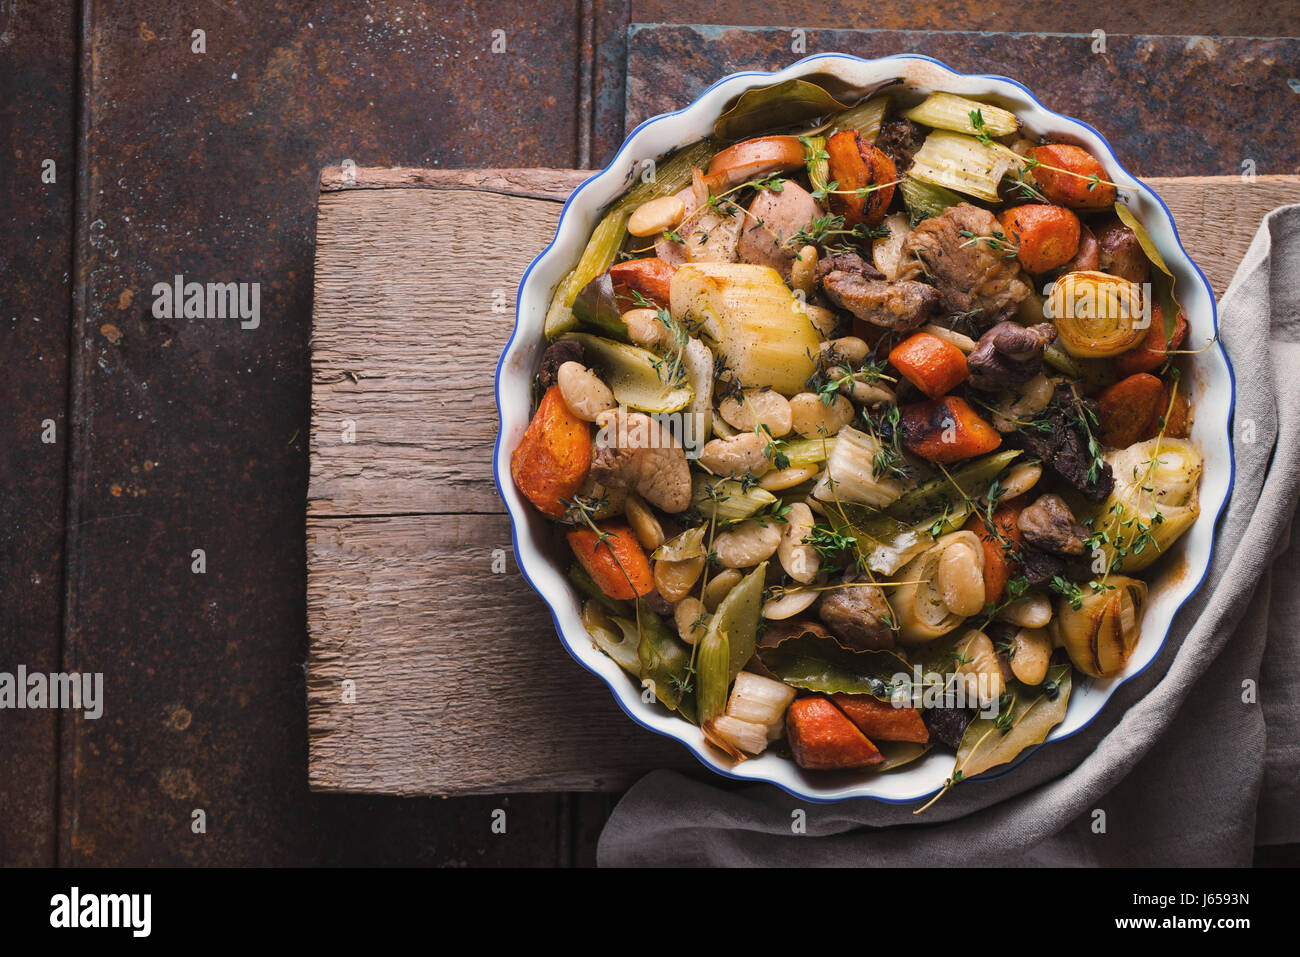 Ready-made kasul with pork and lamb and vegetables - Stock Image